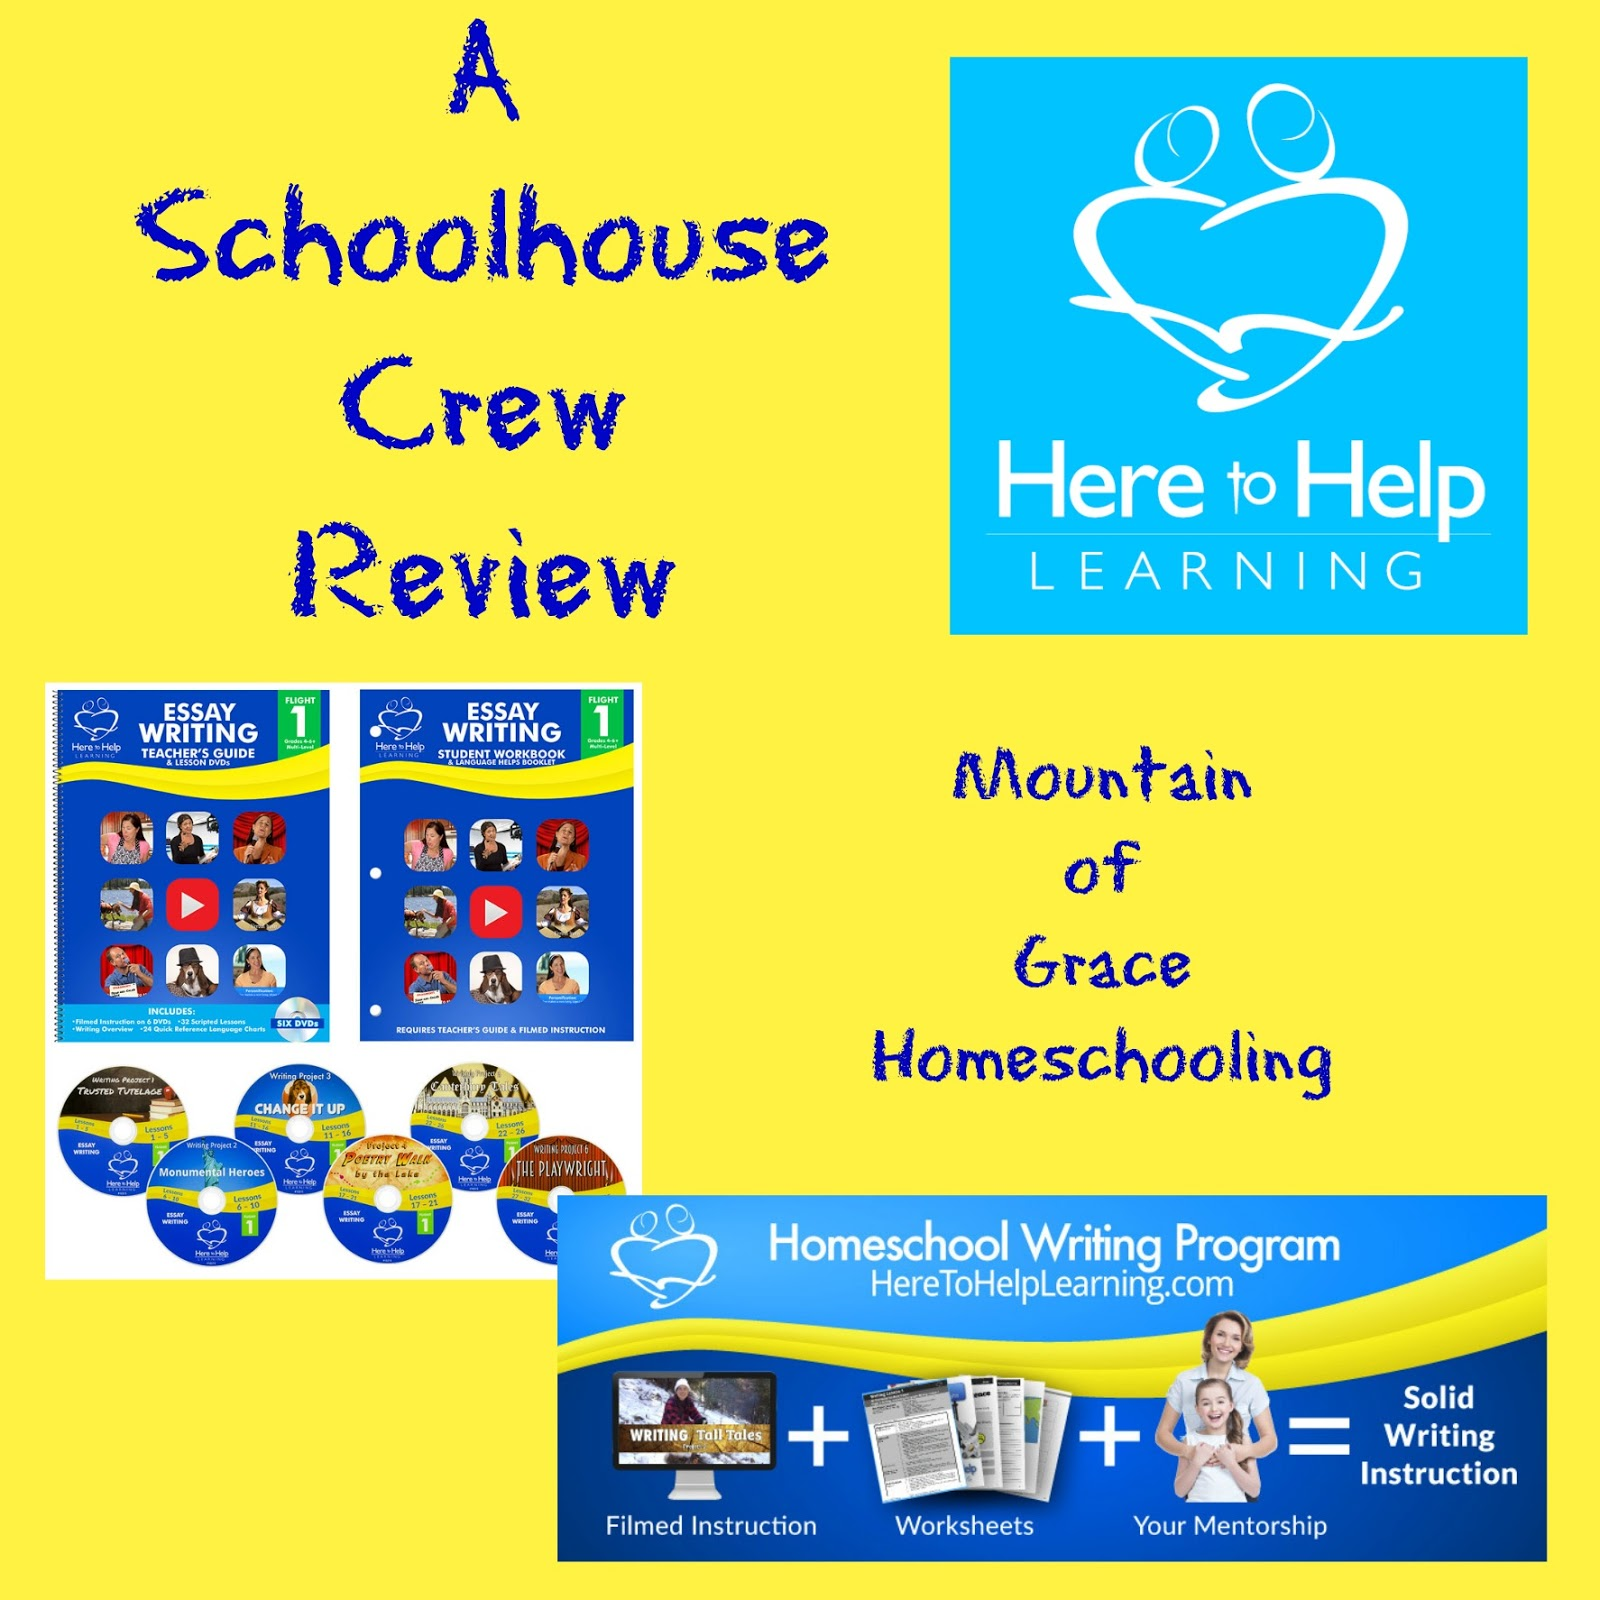 mountain of grace homeschooling tos review here to help learning homeschool writing program